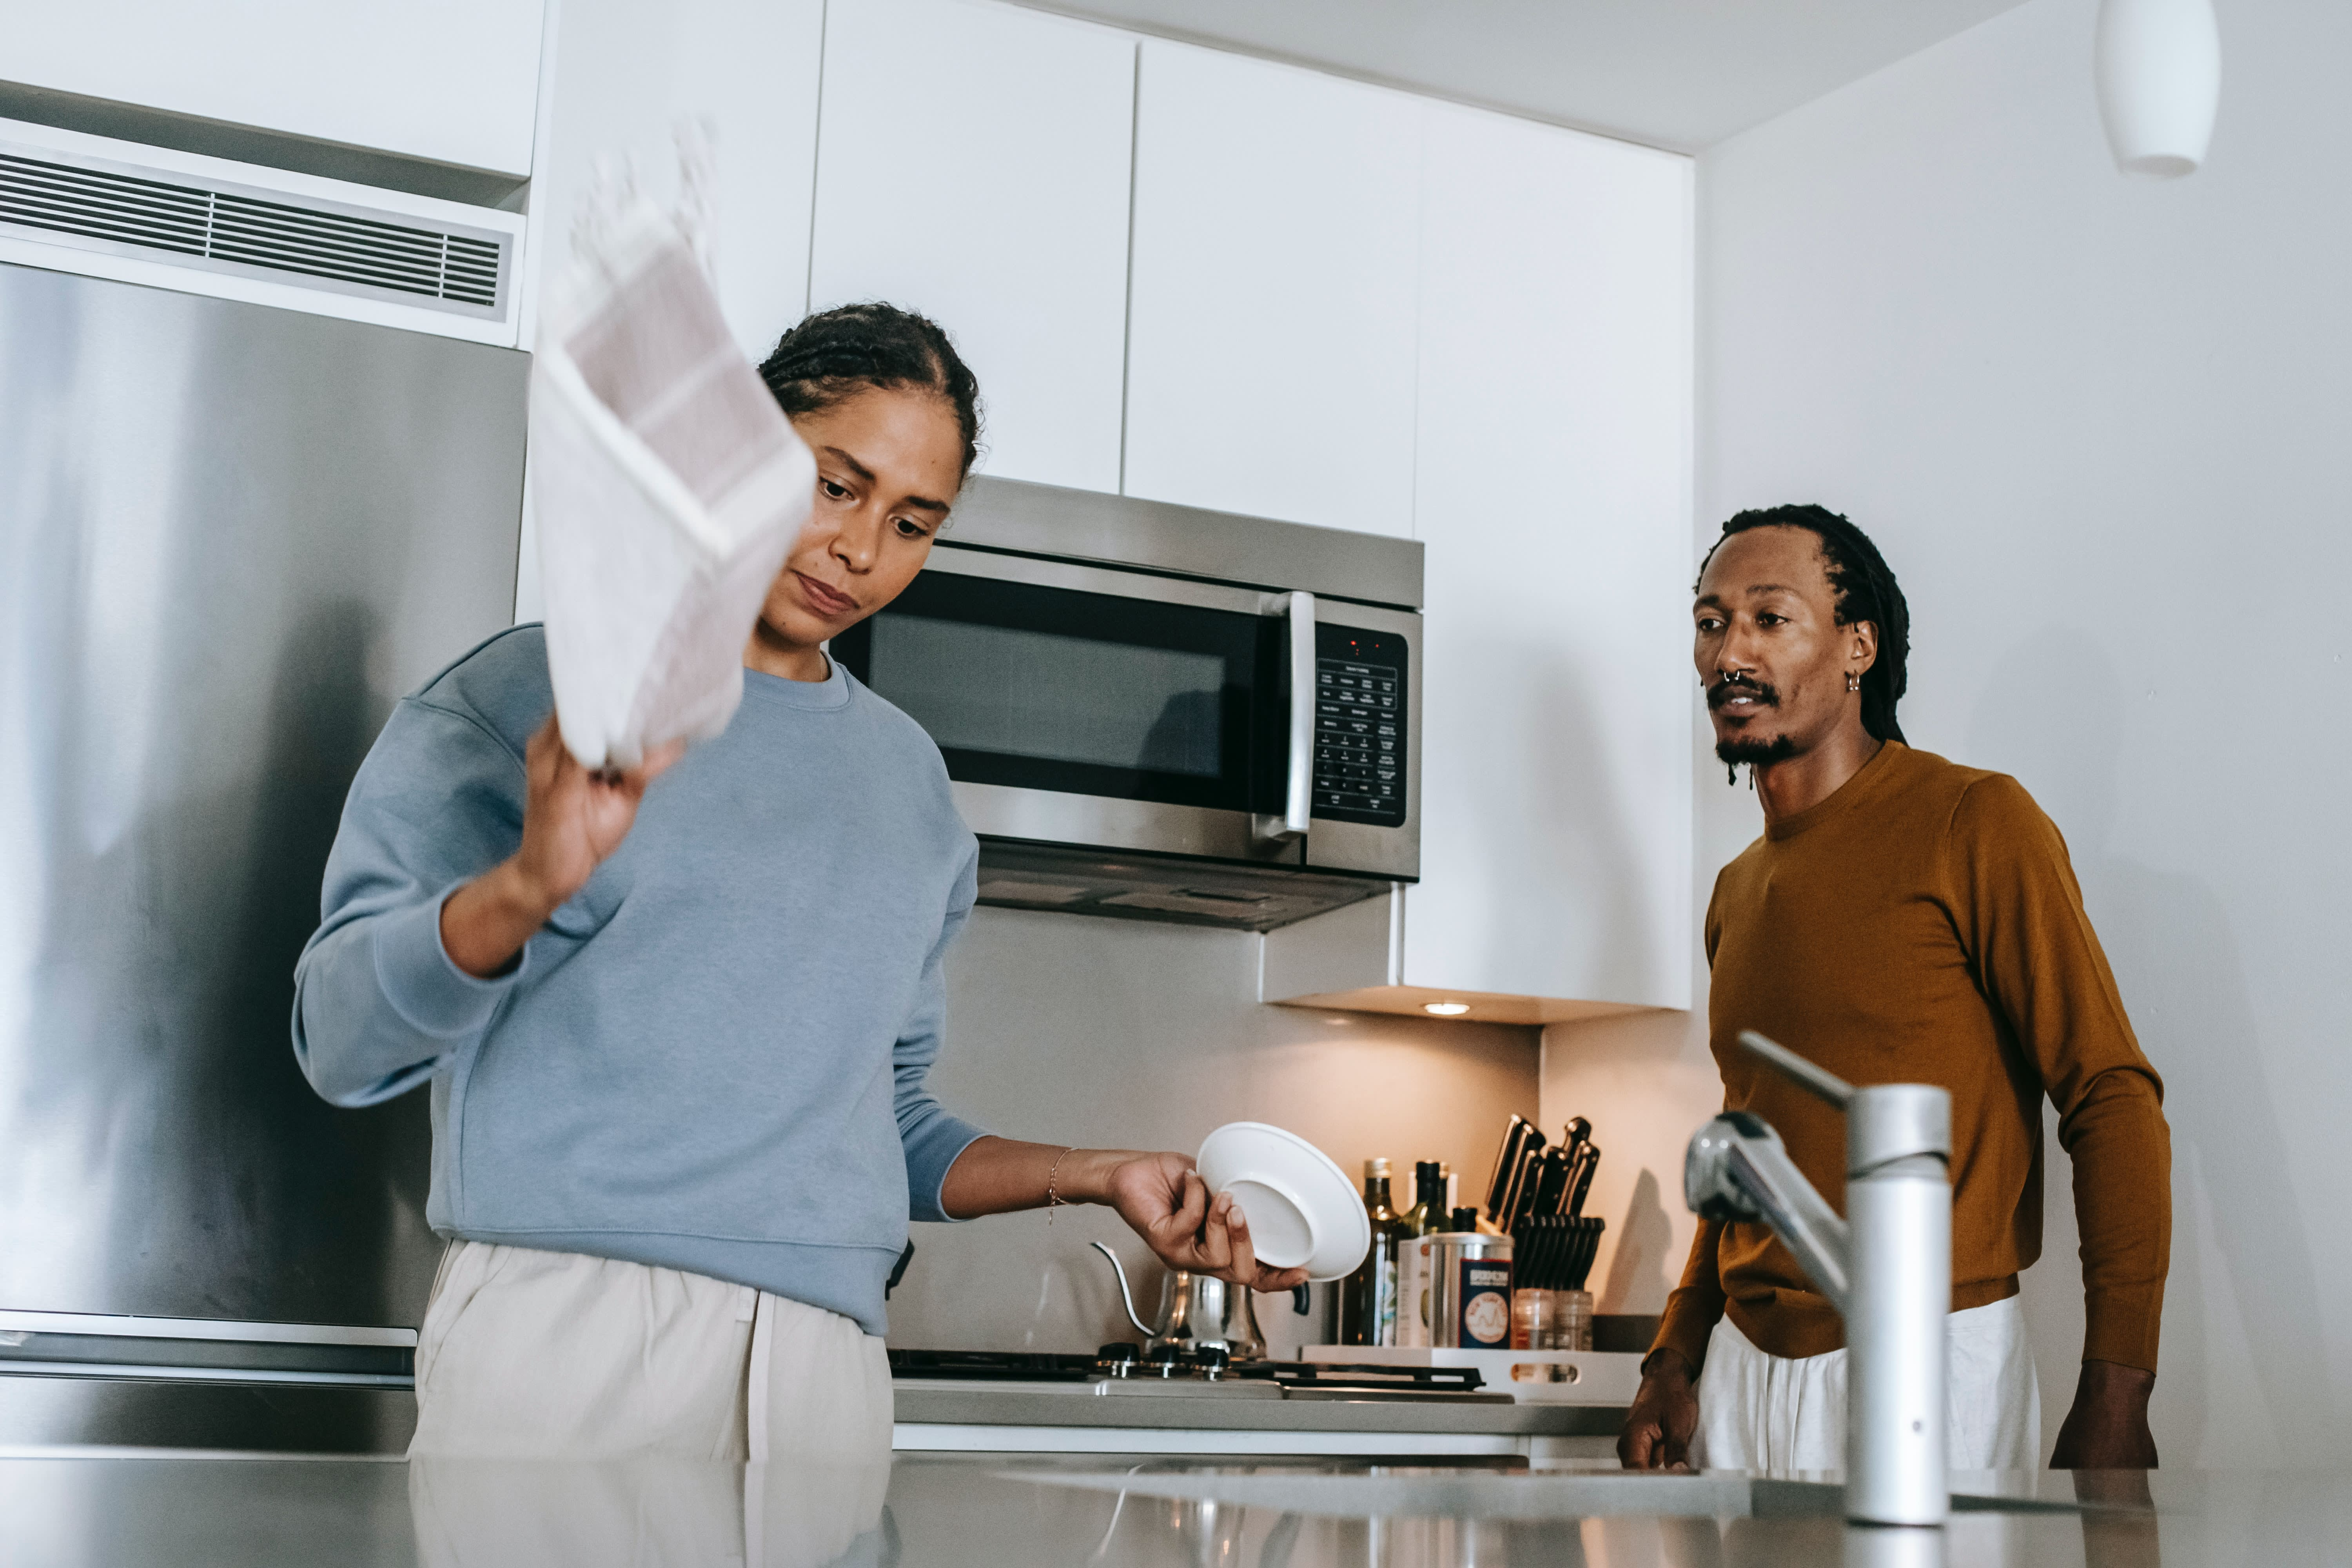 How to advise unmarried, cohabiting couples